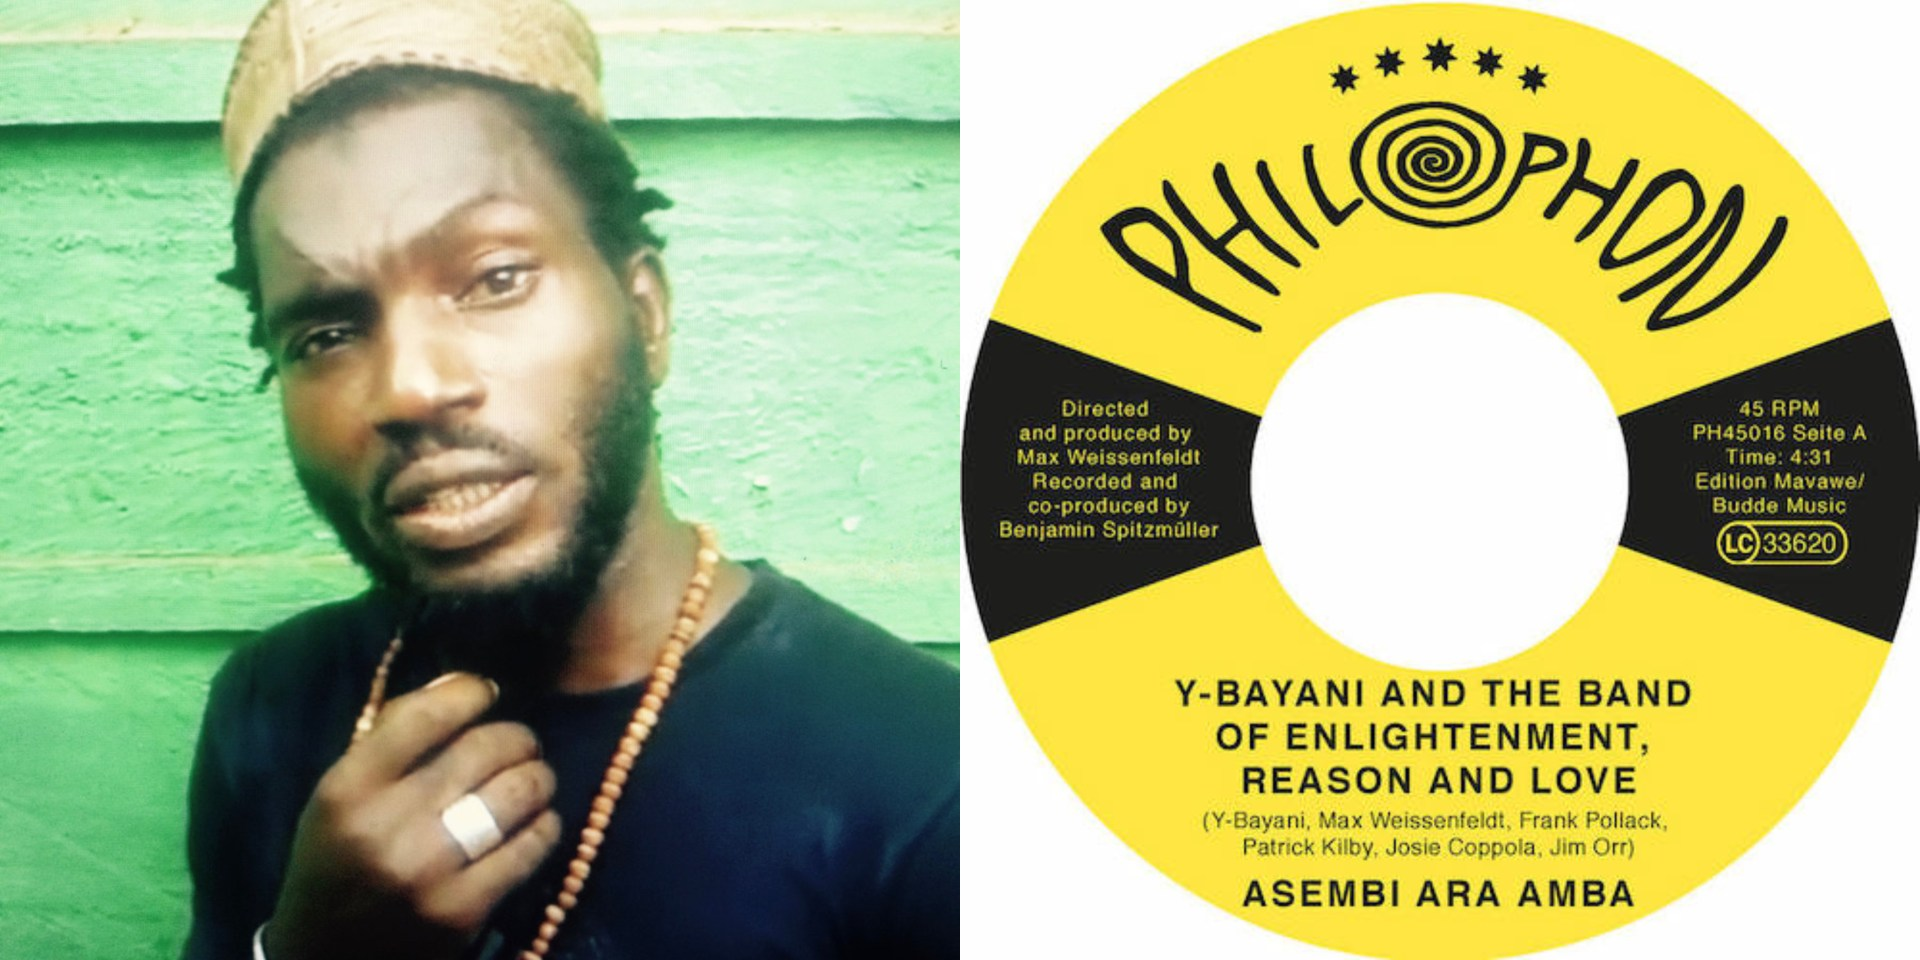 y-bayani and his band of enlightenment, reason and love share two-track 7_